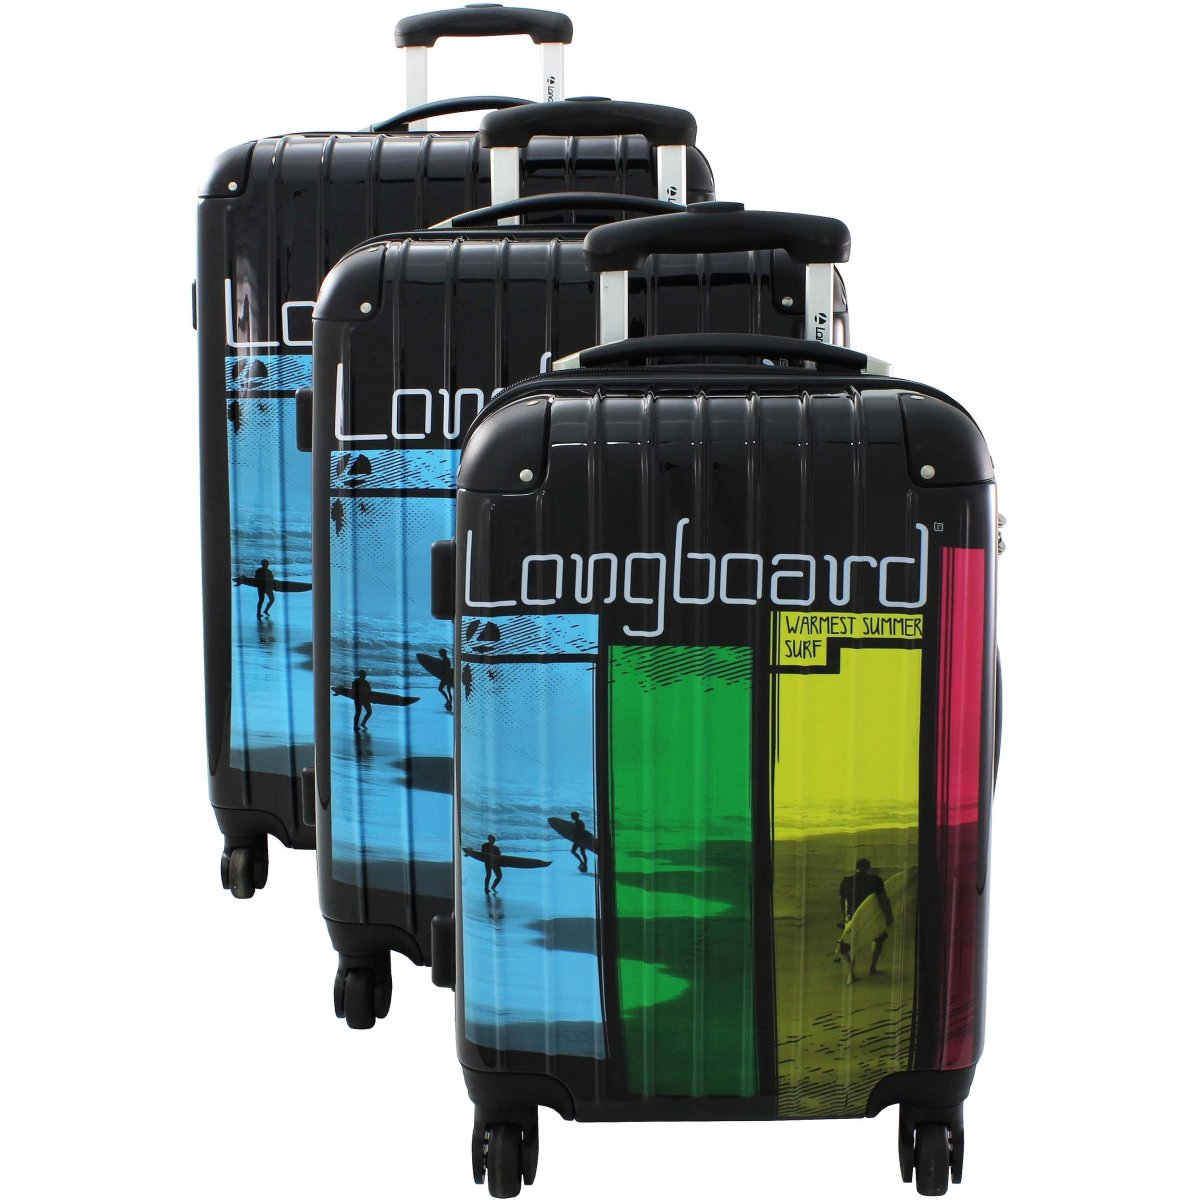 lot 3 valises longboard 441014 couleur principale noir promotion. Black Bedroom Furniture Sets. Home Design Ideas